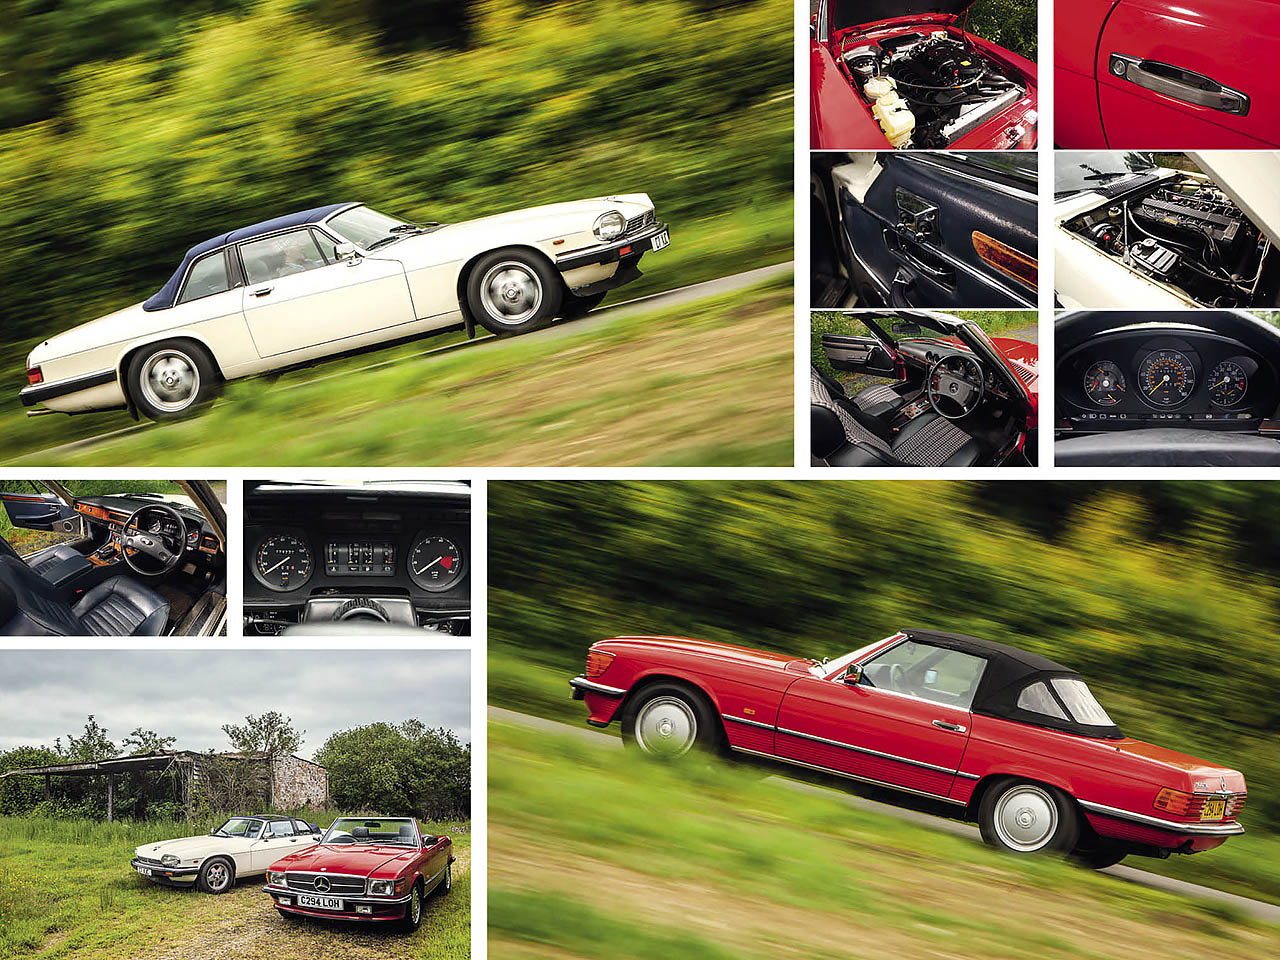 Jaguar XJ-SC vs. Mercedes-Benz 300SL R107 road test